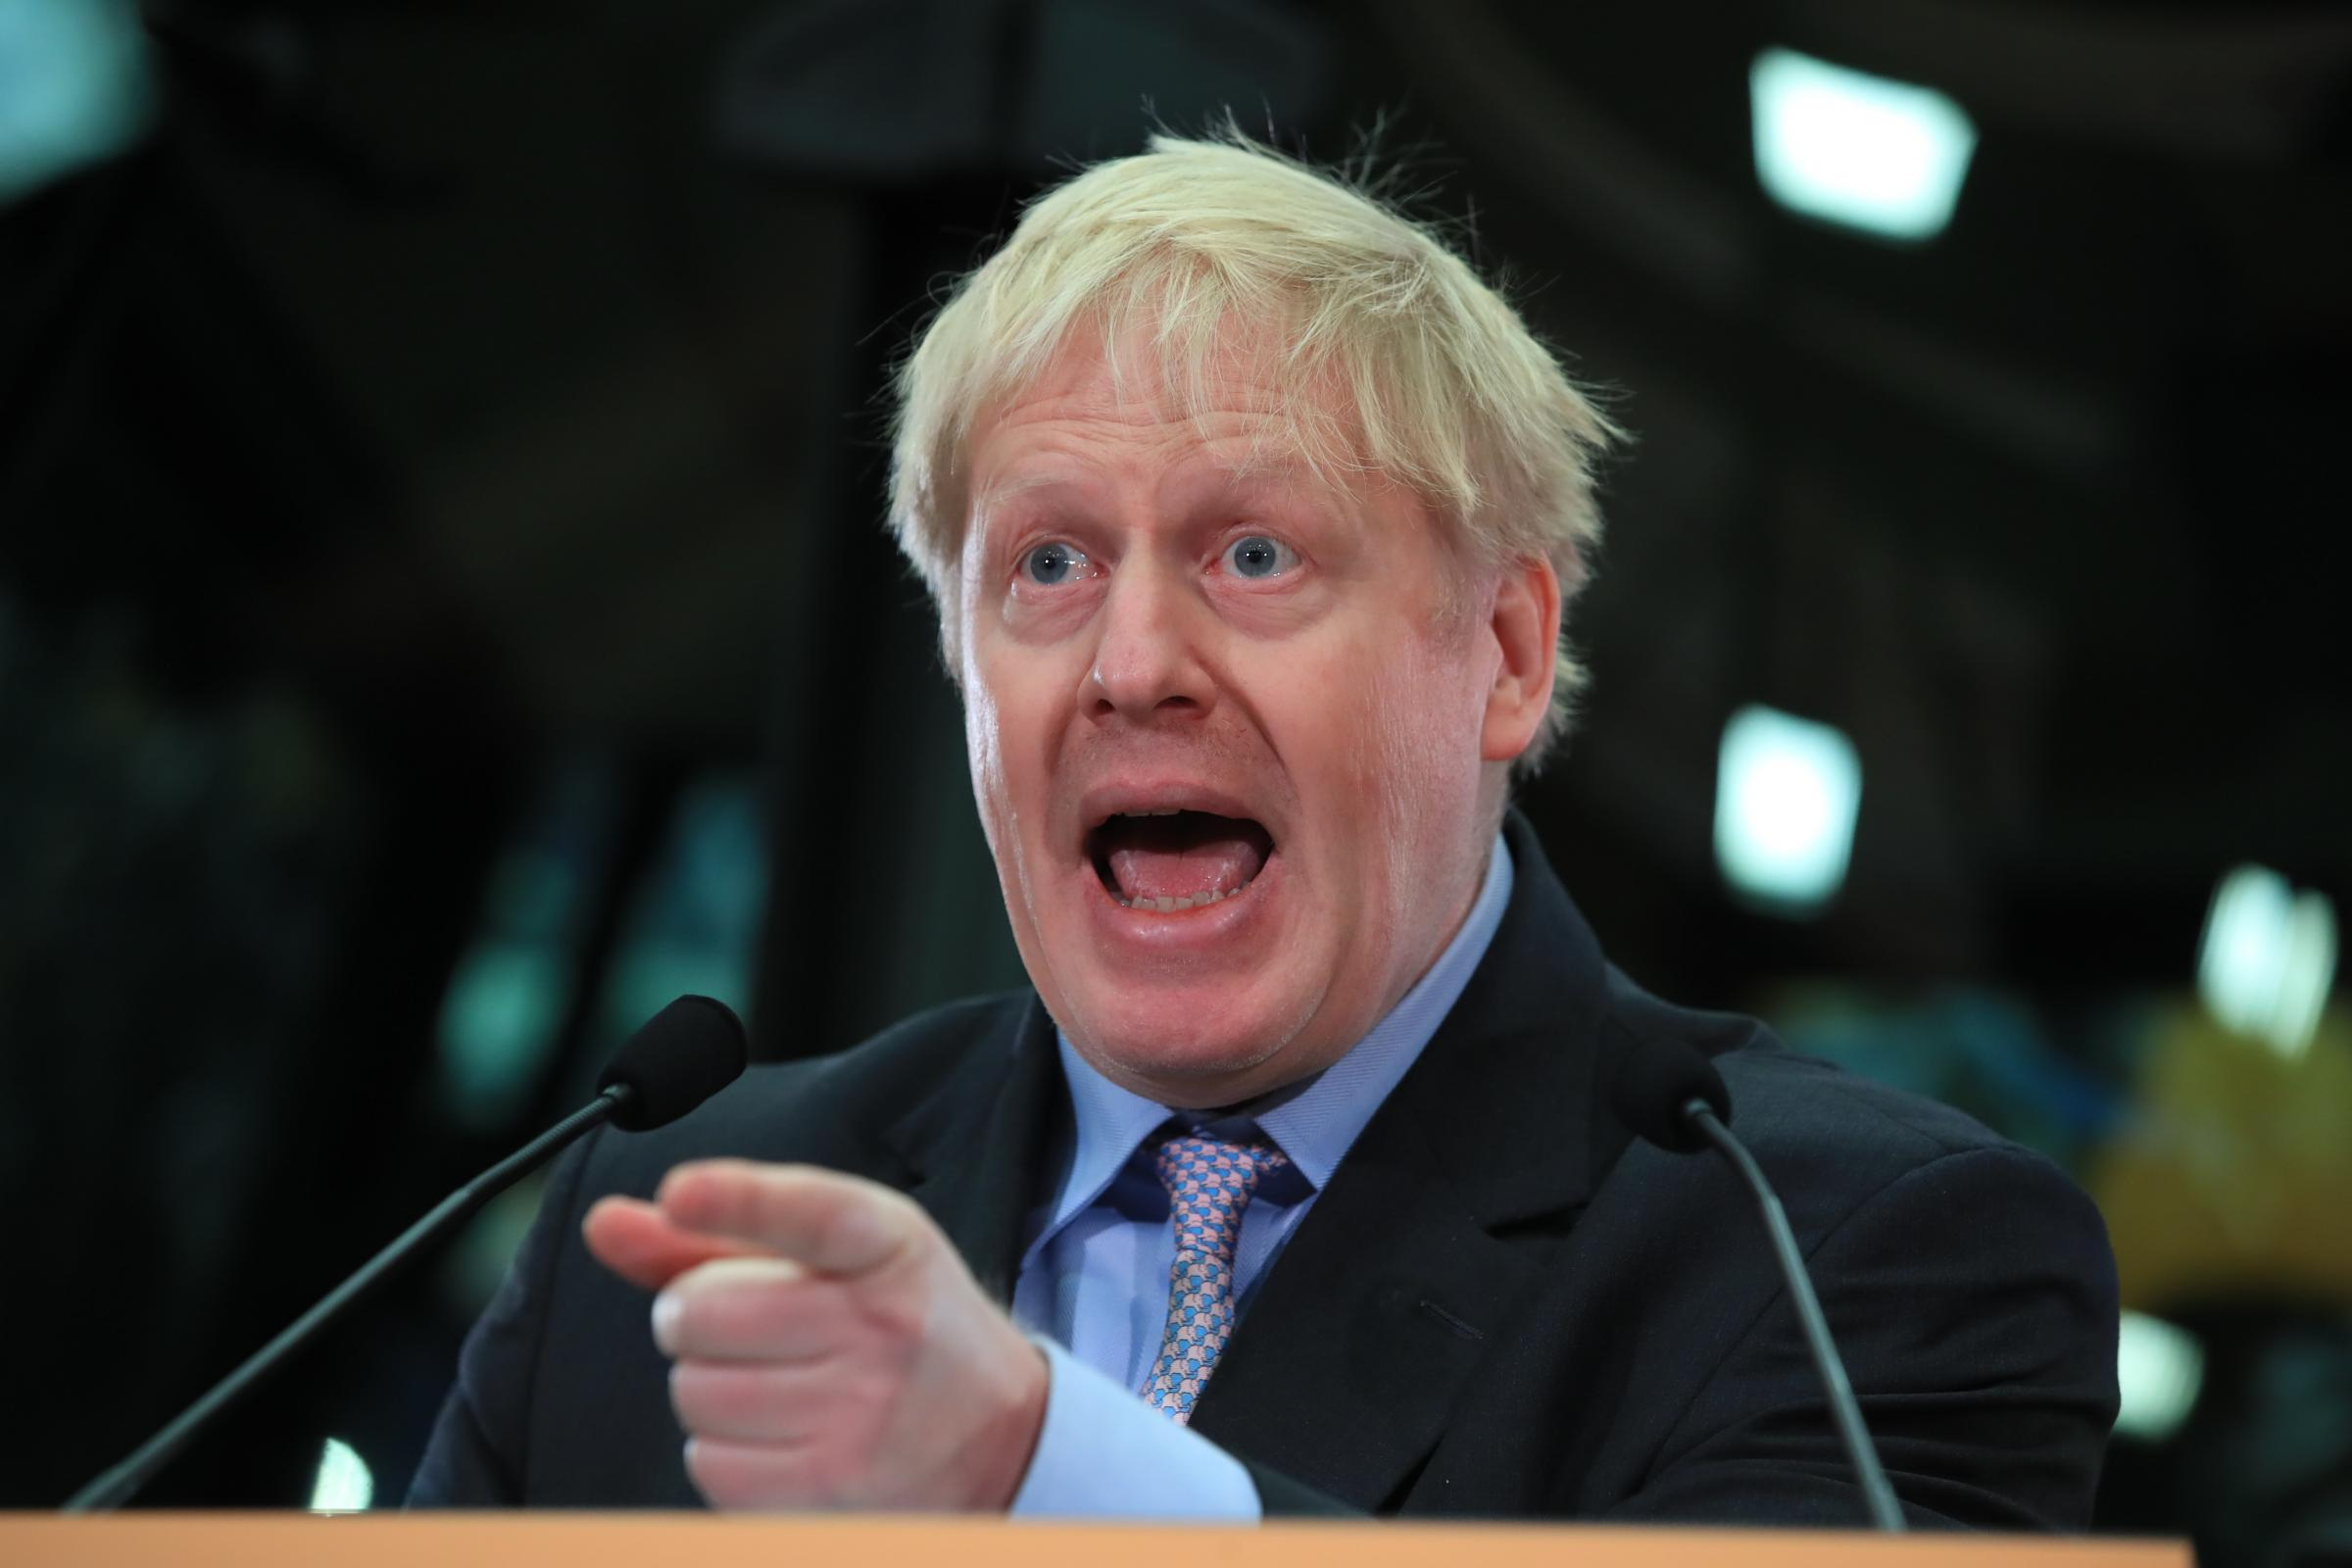 Boris Johnson speaking at the headquarters of JCB in Rocester, Staffordshire